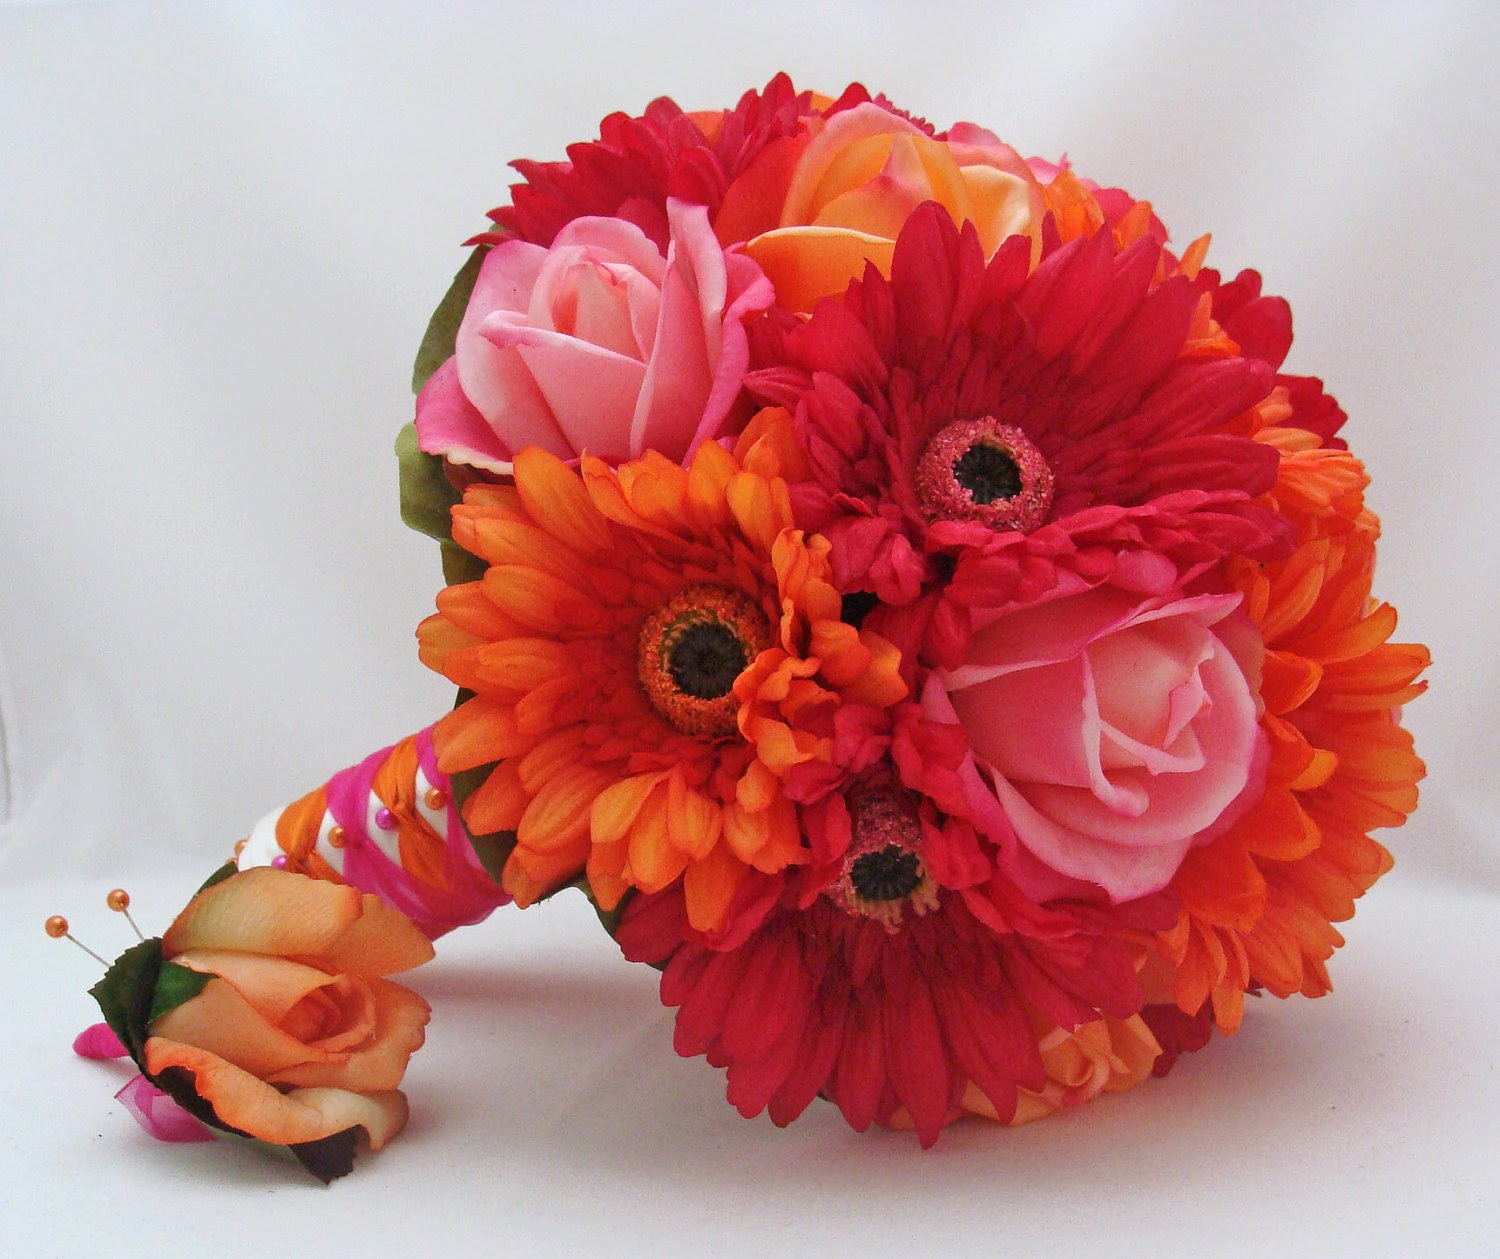 orange and pink gerbera daisy bouquet